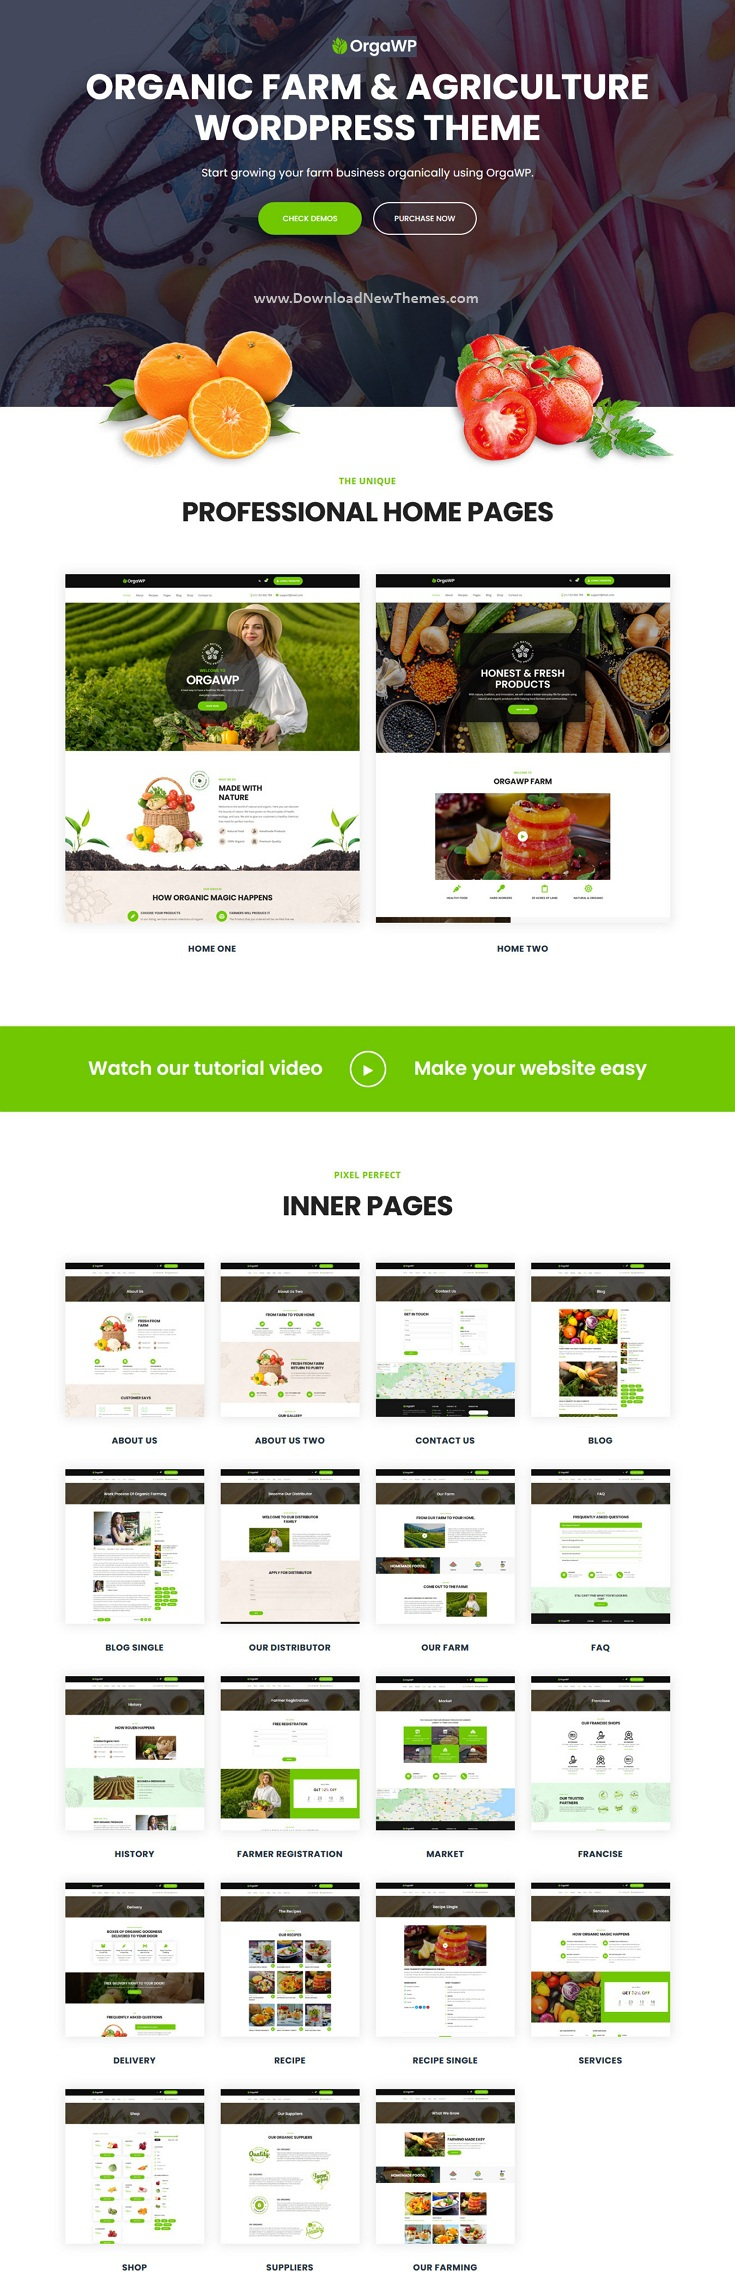 Organic Farm & Agriculture WordPress Theme